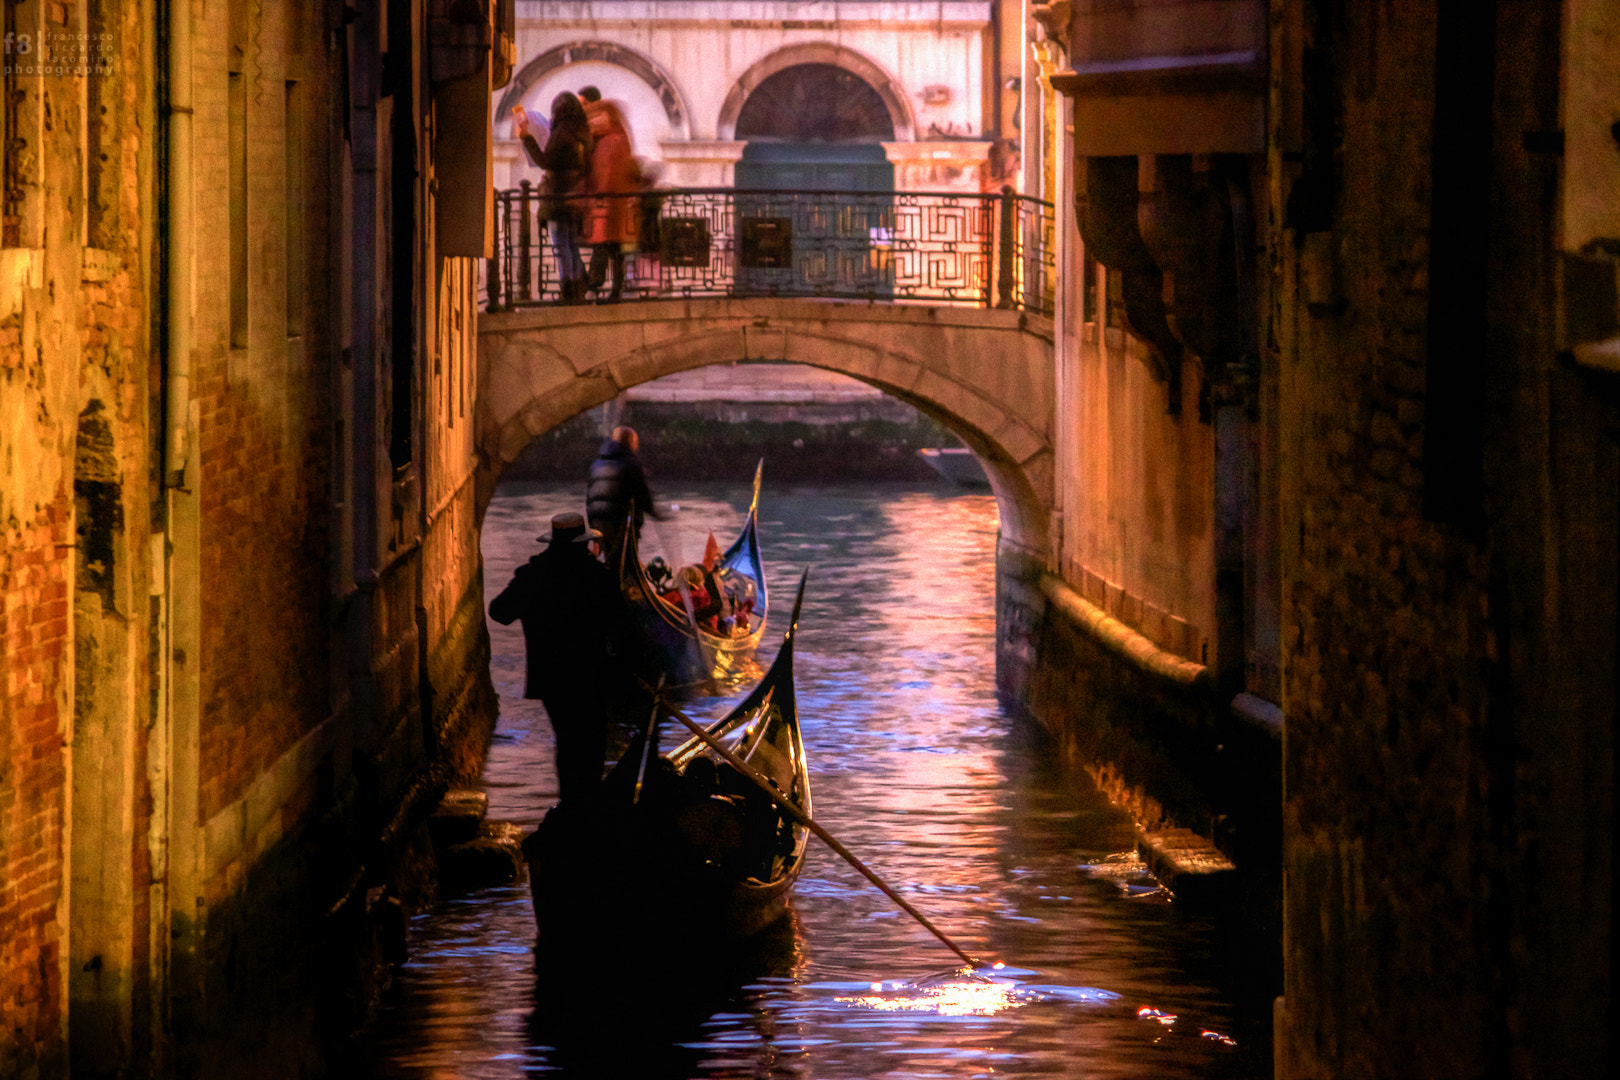 Photograph Venetian dream by Francesco Riccardo Iacomino on 500px